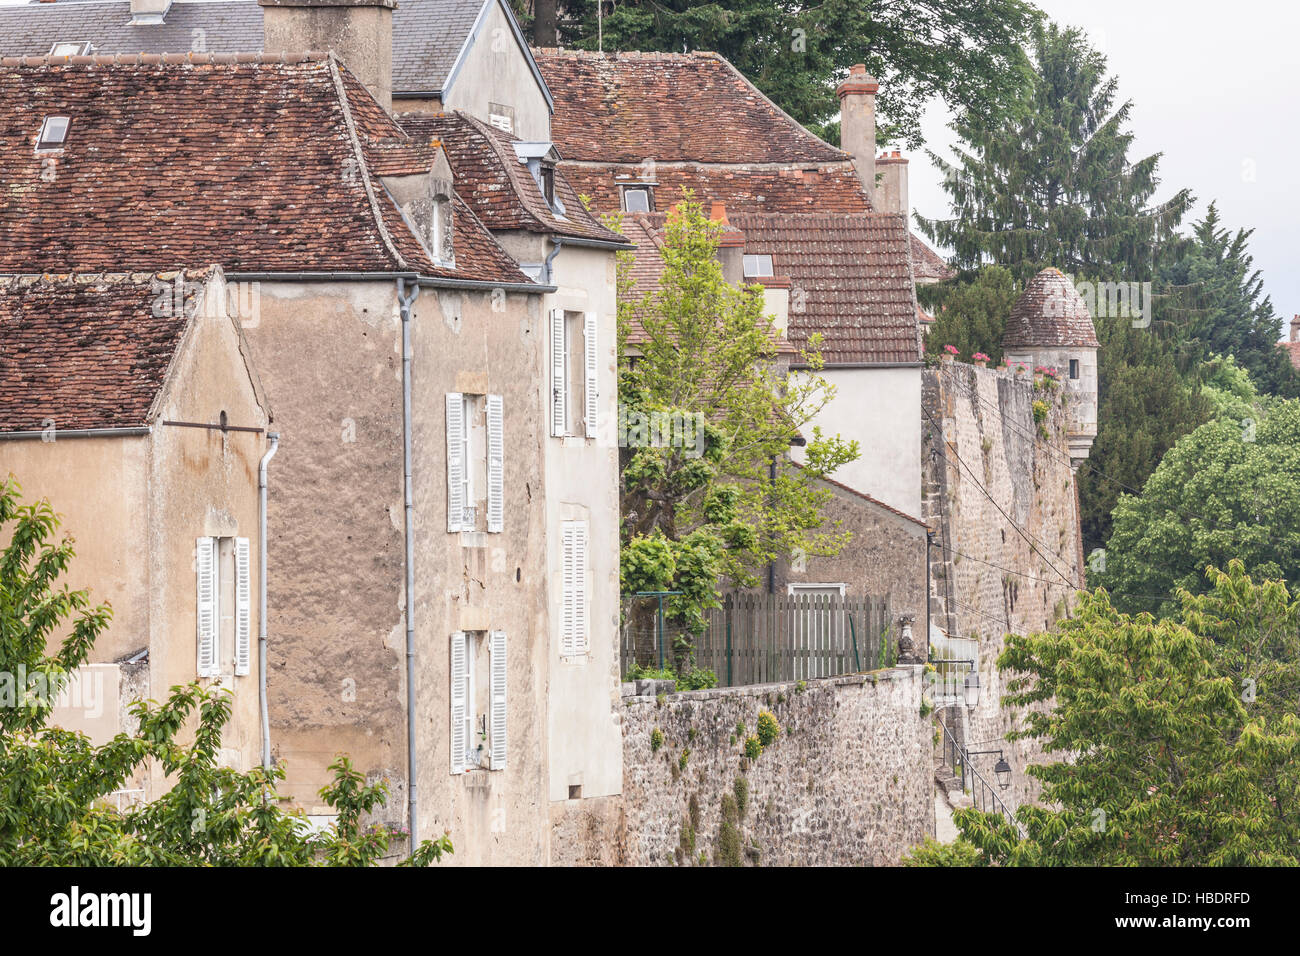 The old ramparts in Avallon, Burgundy. - Stock Image